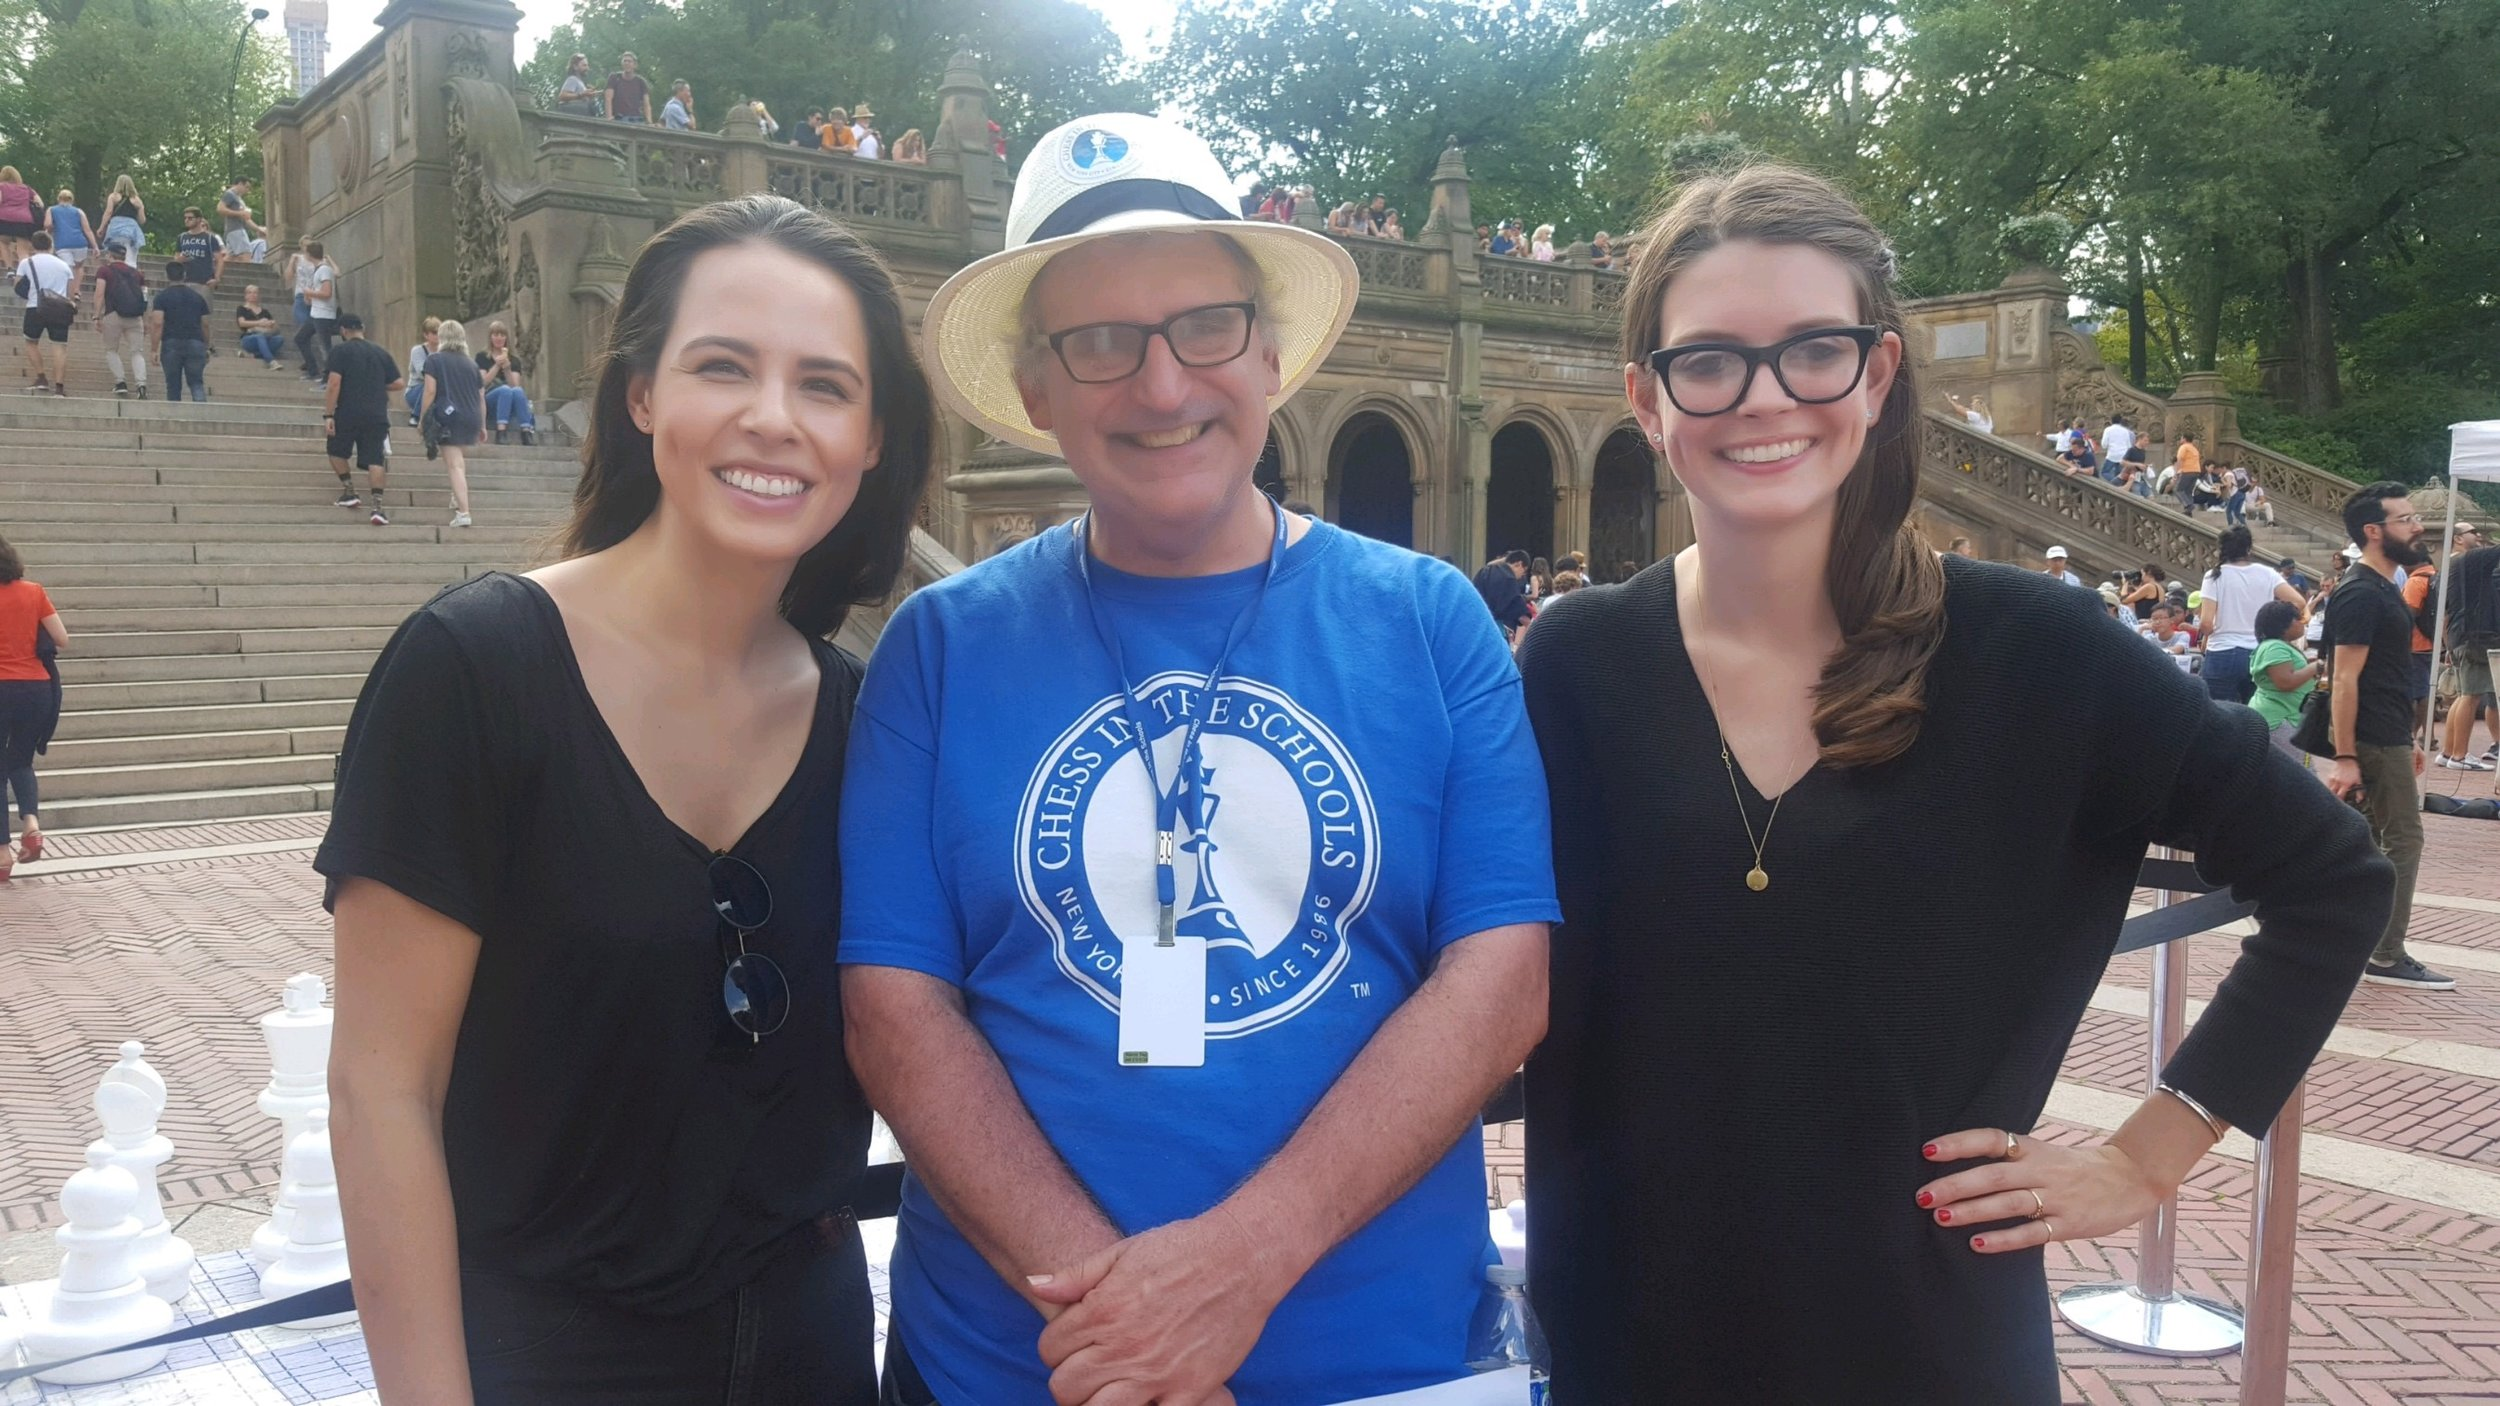 Karsten, chess teacher Mitch Fitzko, and Nicole at the 18th annual Chess-in-the-Park